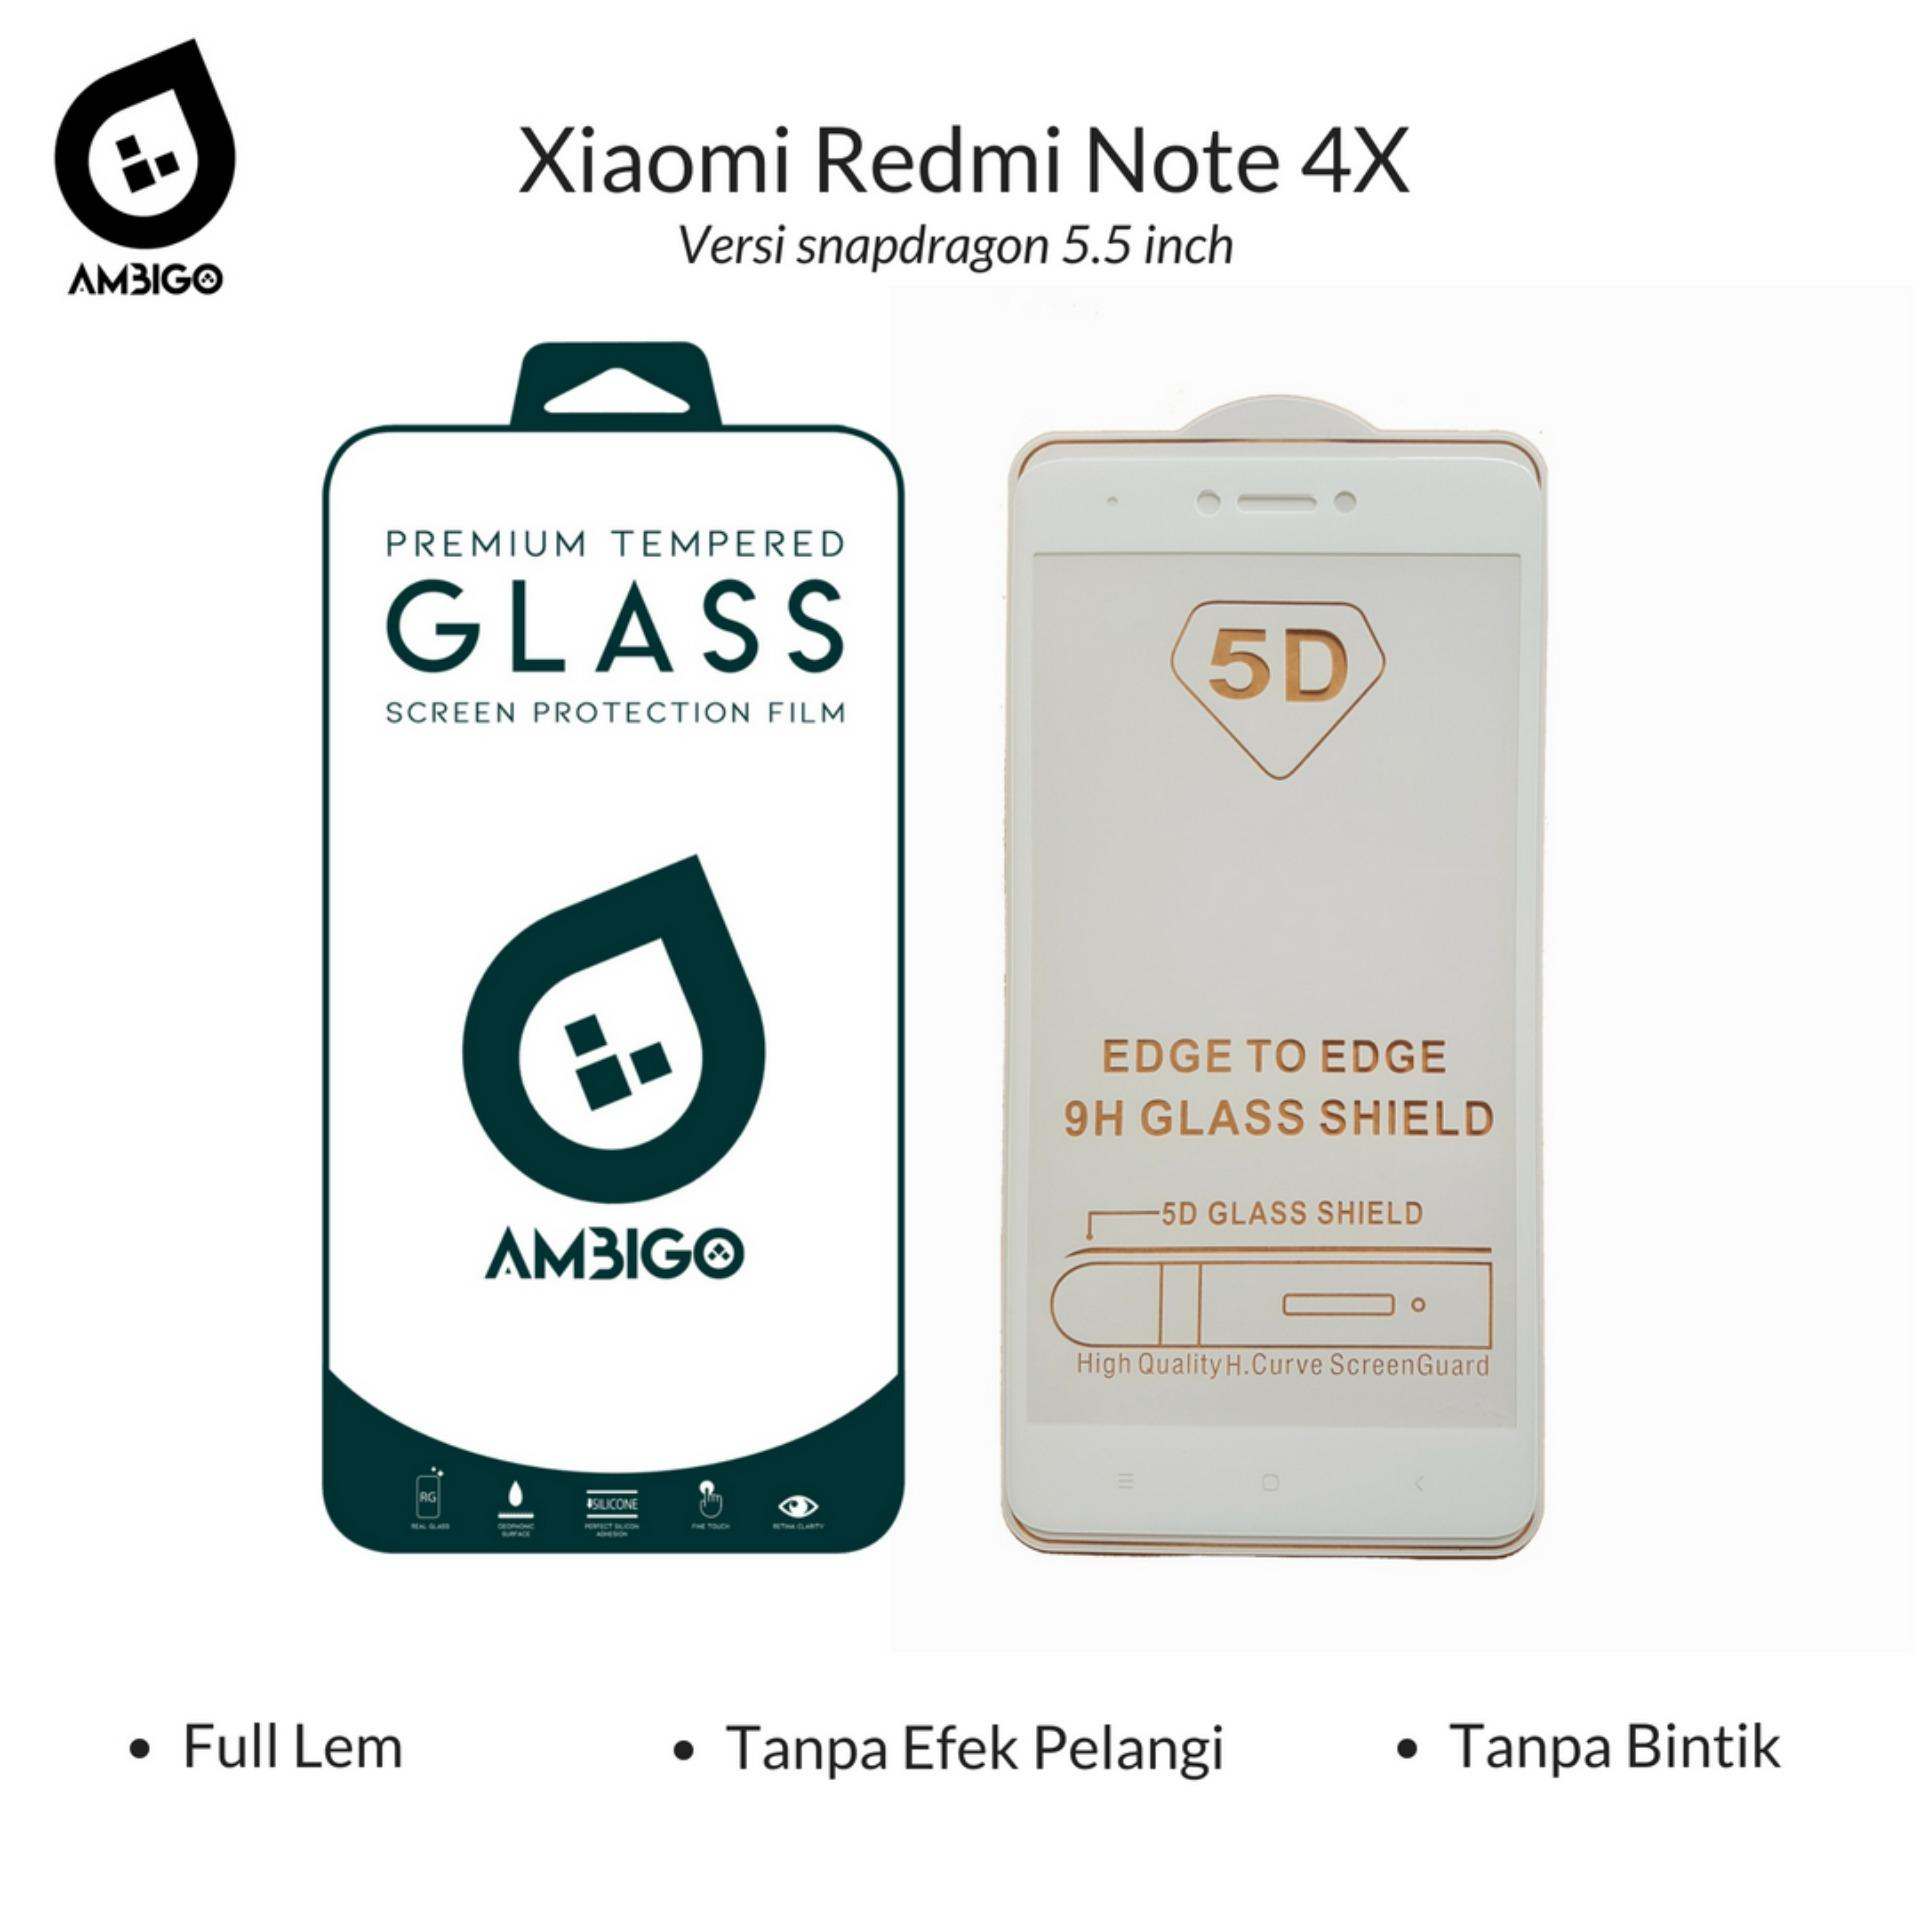 Ambigo 5D Tempered Glass Screen Protector Xiaomi Redmi Note 4X, Redmi Note 4 Versi Snapdragon ( 5.5 inch ) Full Cover Glue - White